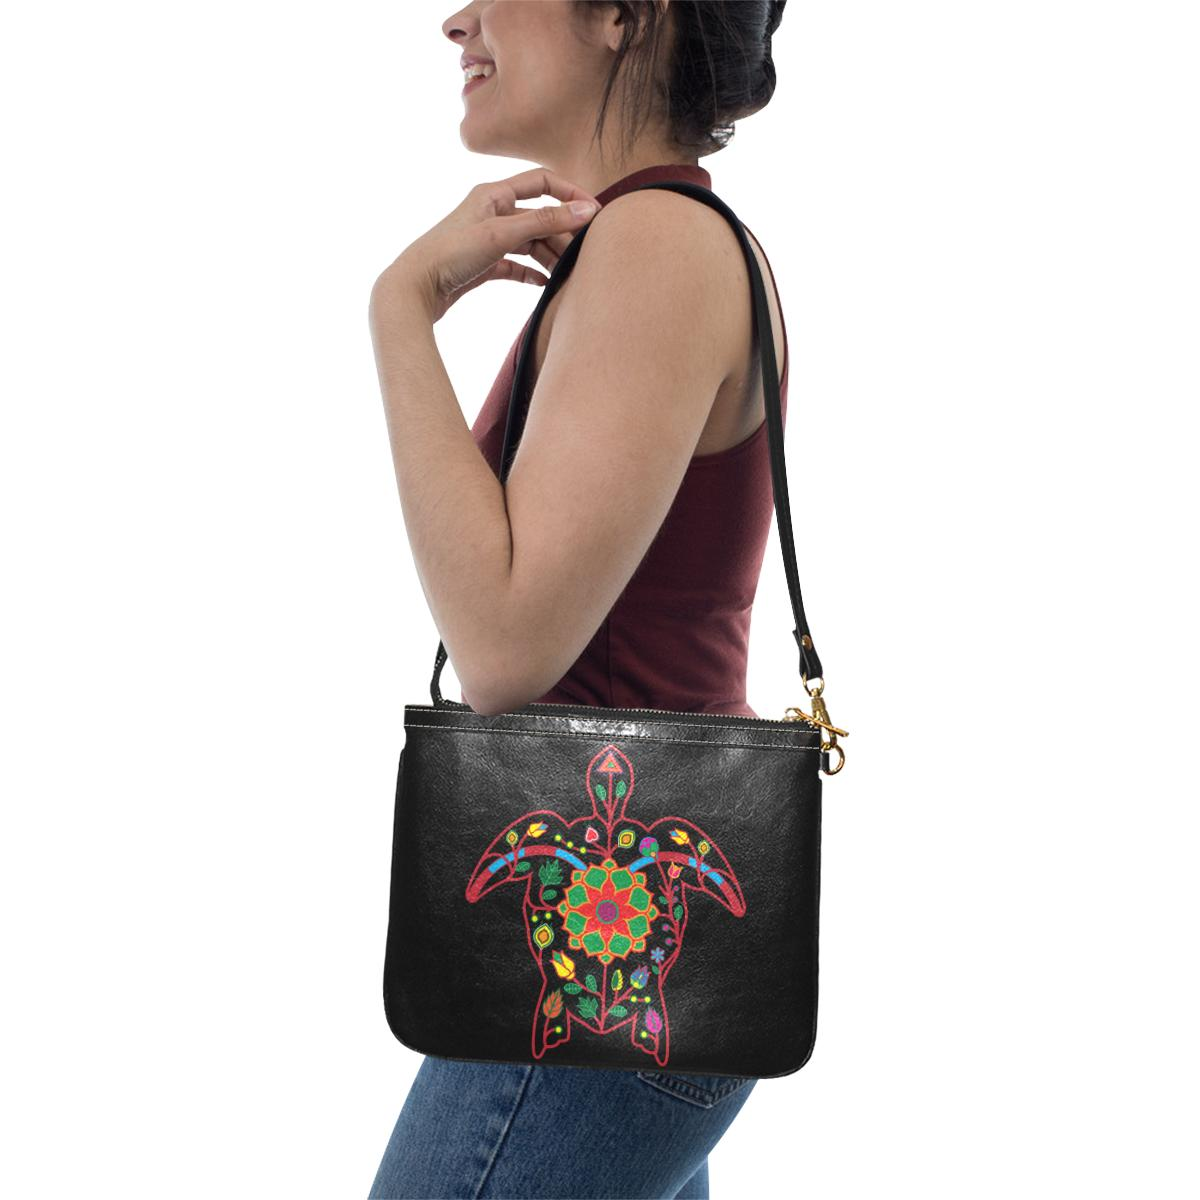 Floral Turtle Small Shoulder Bag (Model 1710) Small Shoulder Bag (1710) e-joyer